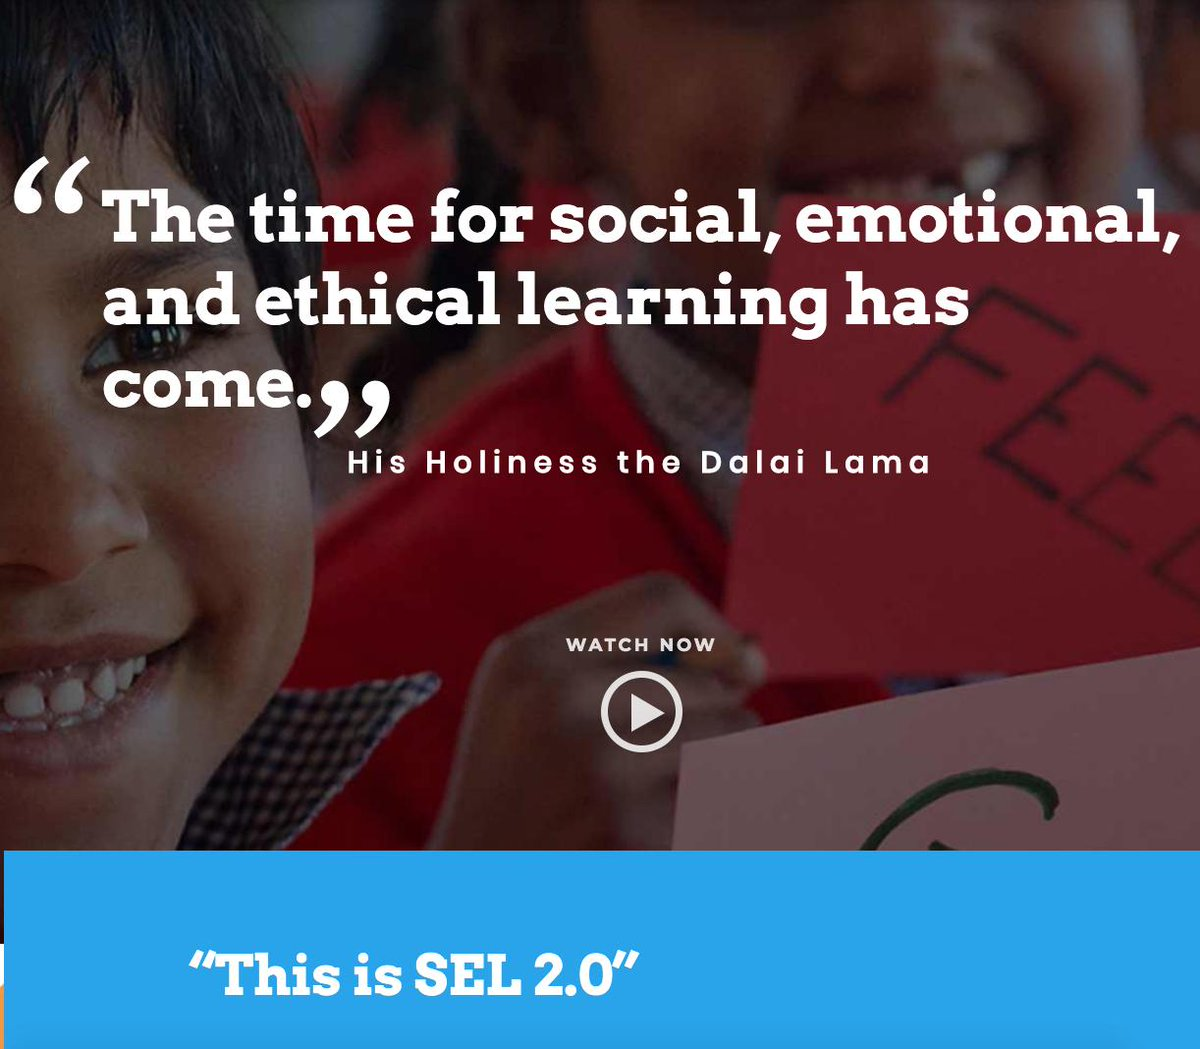 In case you missed it!Emory University and the Dalai Lama launch free tools and resources to foster the development of emotional, social and ethical intelligence http://bit.ly/2PjFQ3g